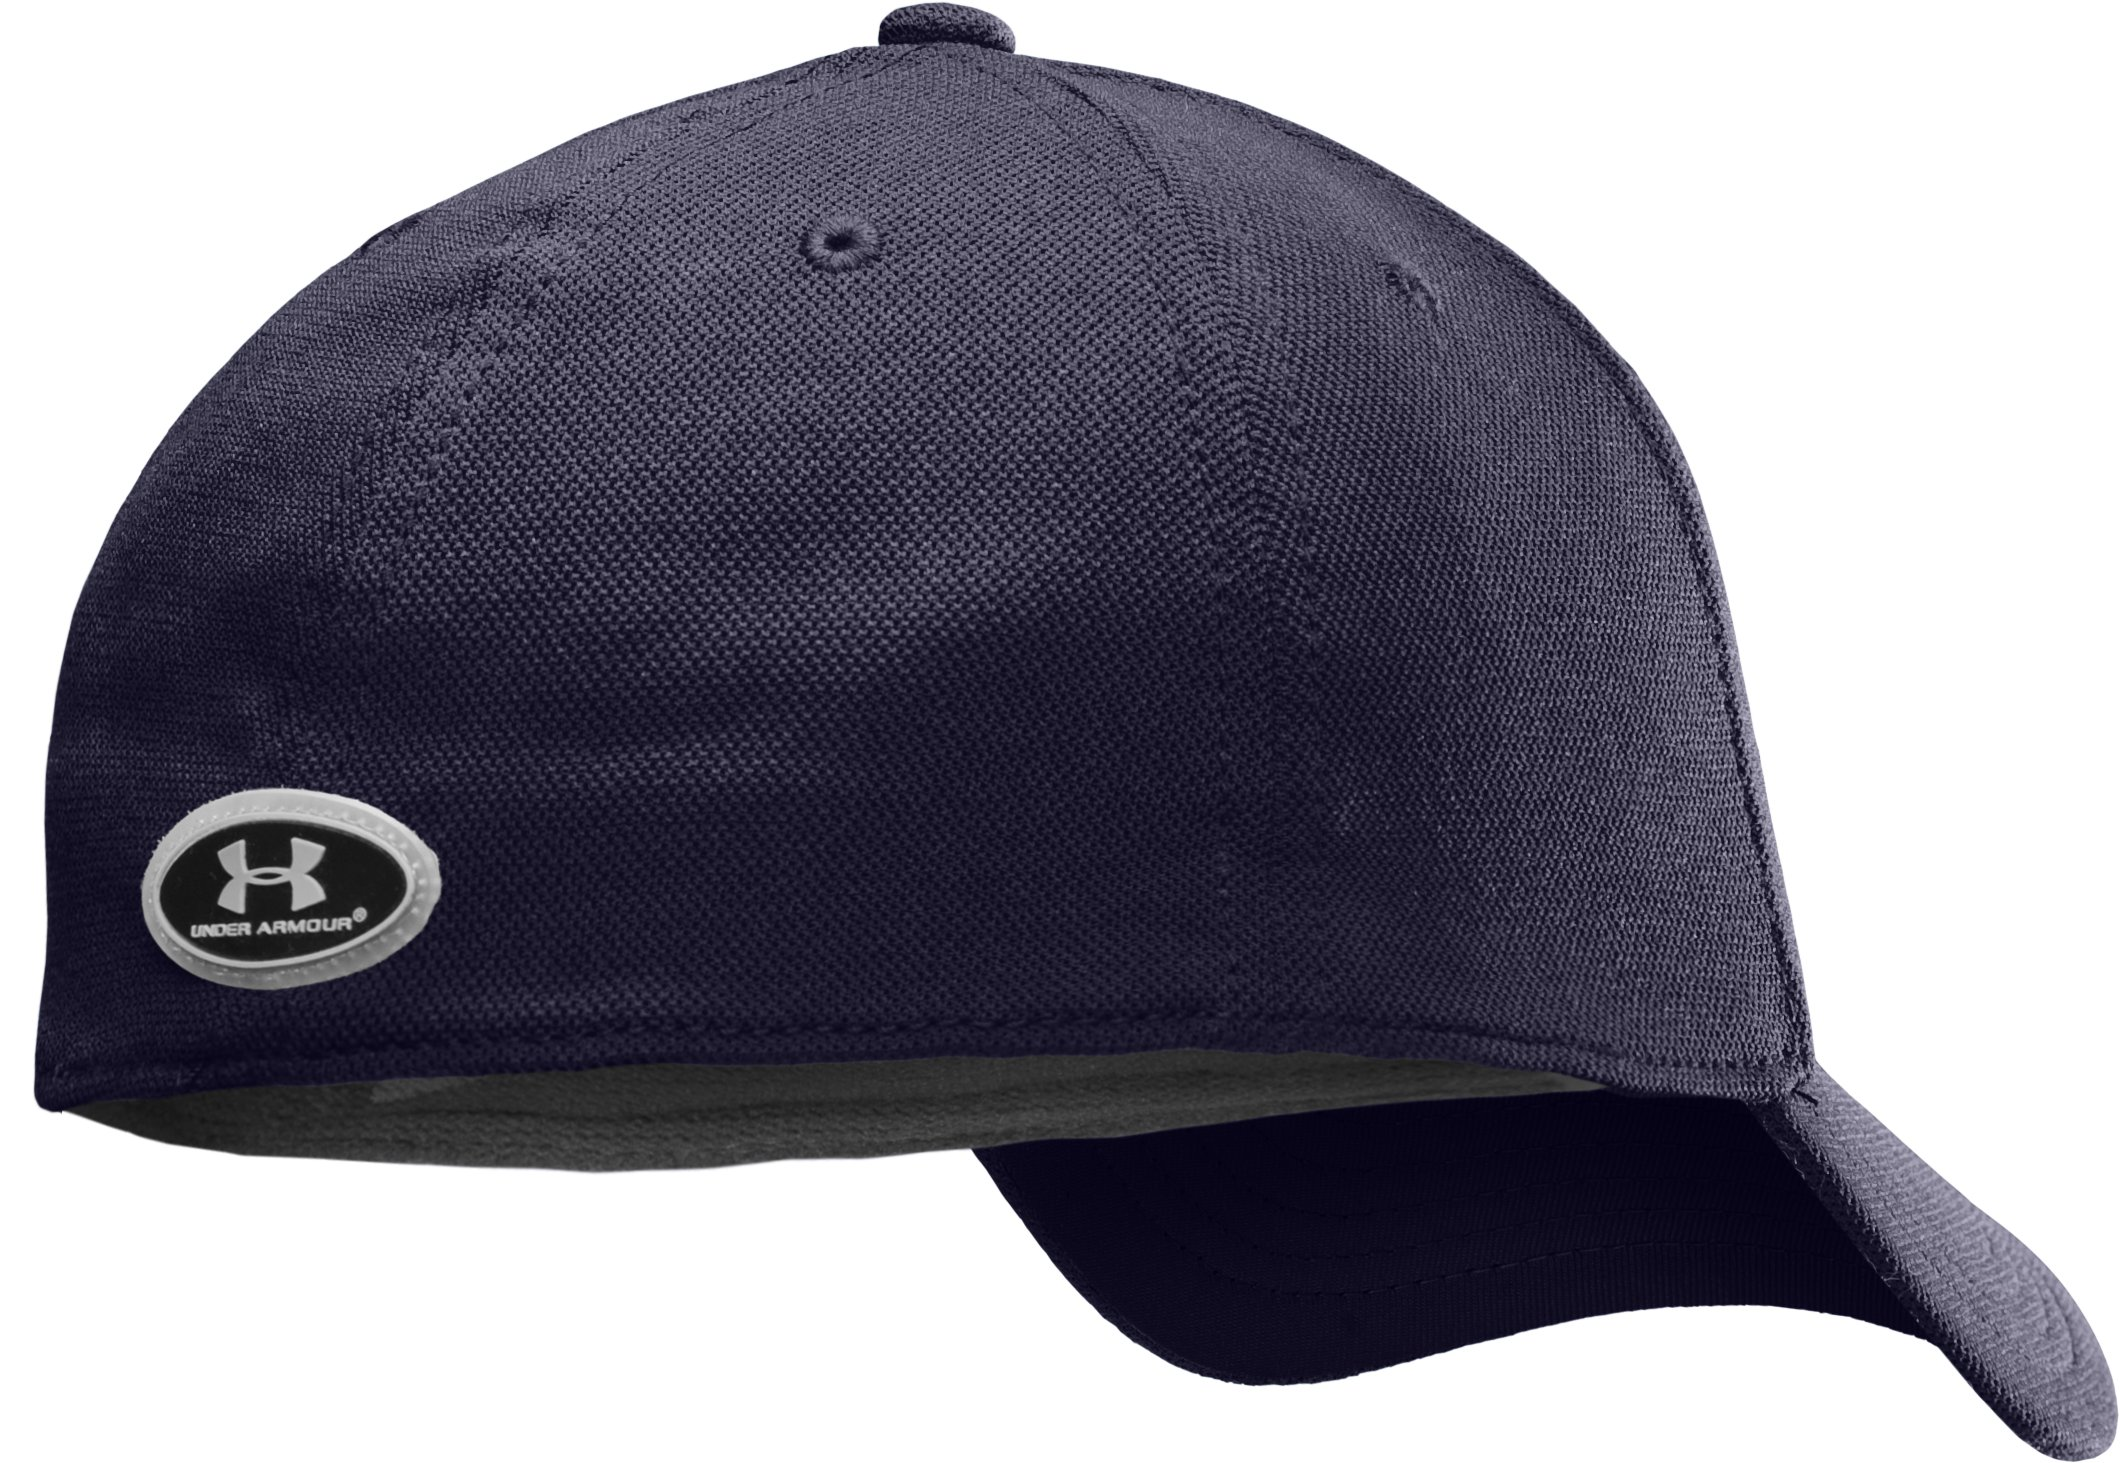 Men's Armour® Stretch Fit Cap, Midnight Navy